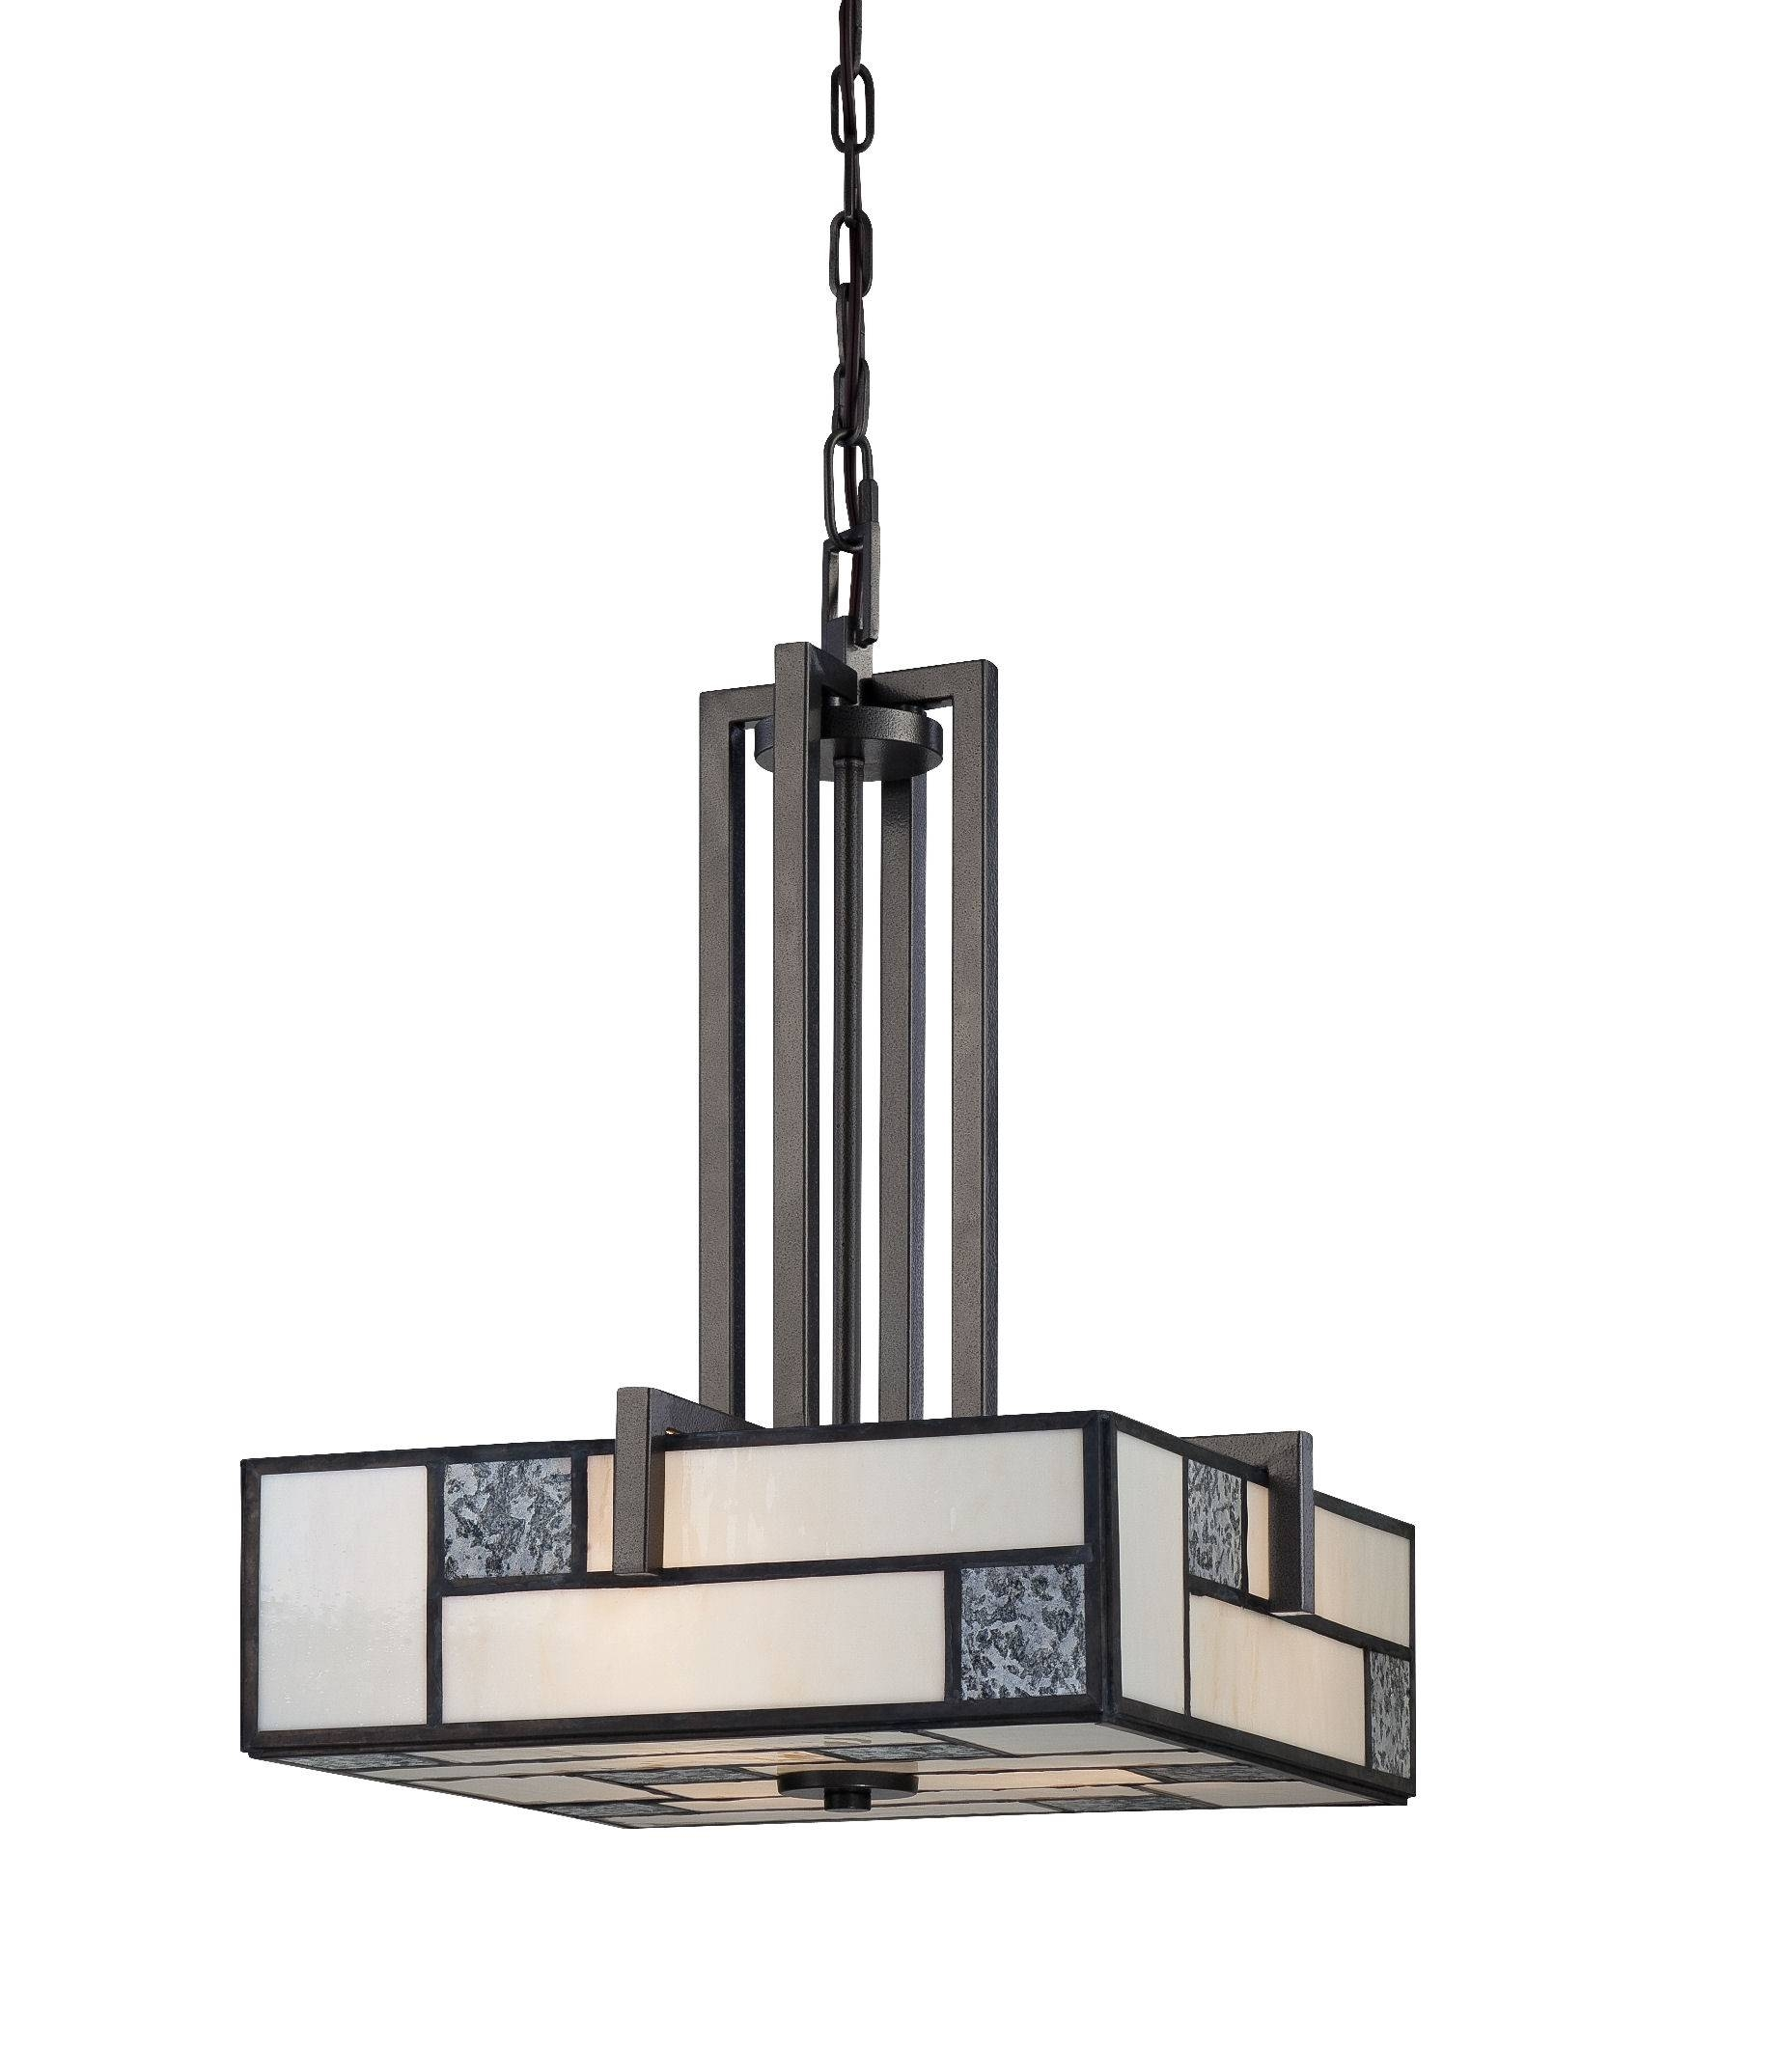 Mesmerizing Art Deco Pendant Lights Perfect Pendant Design Styles with regard to Art Nouveau Pendant Lights (Image 12 of 15)